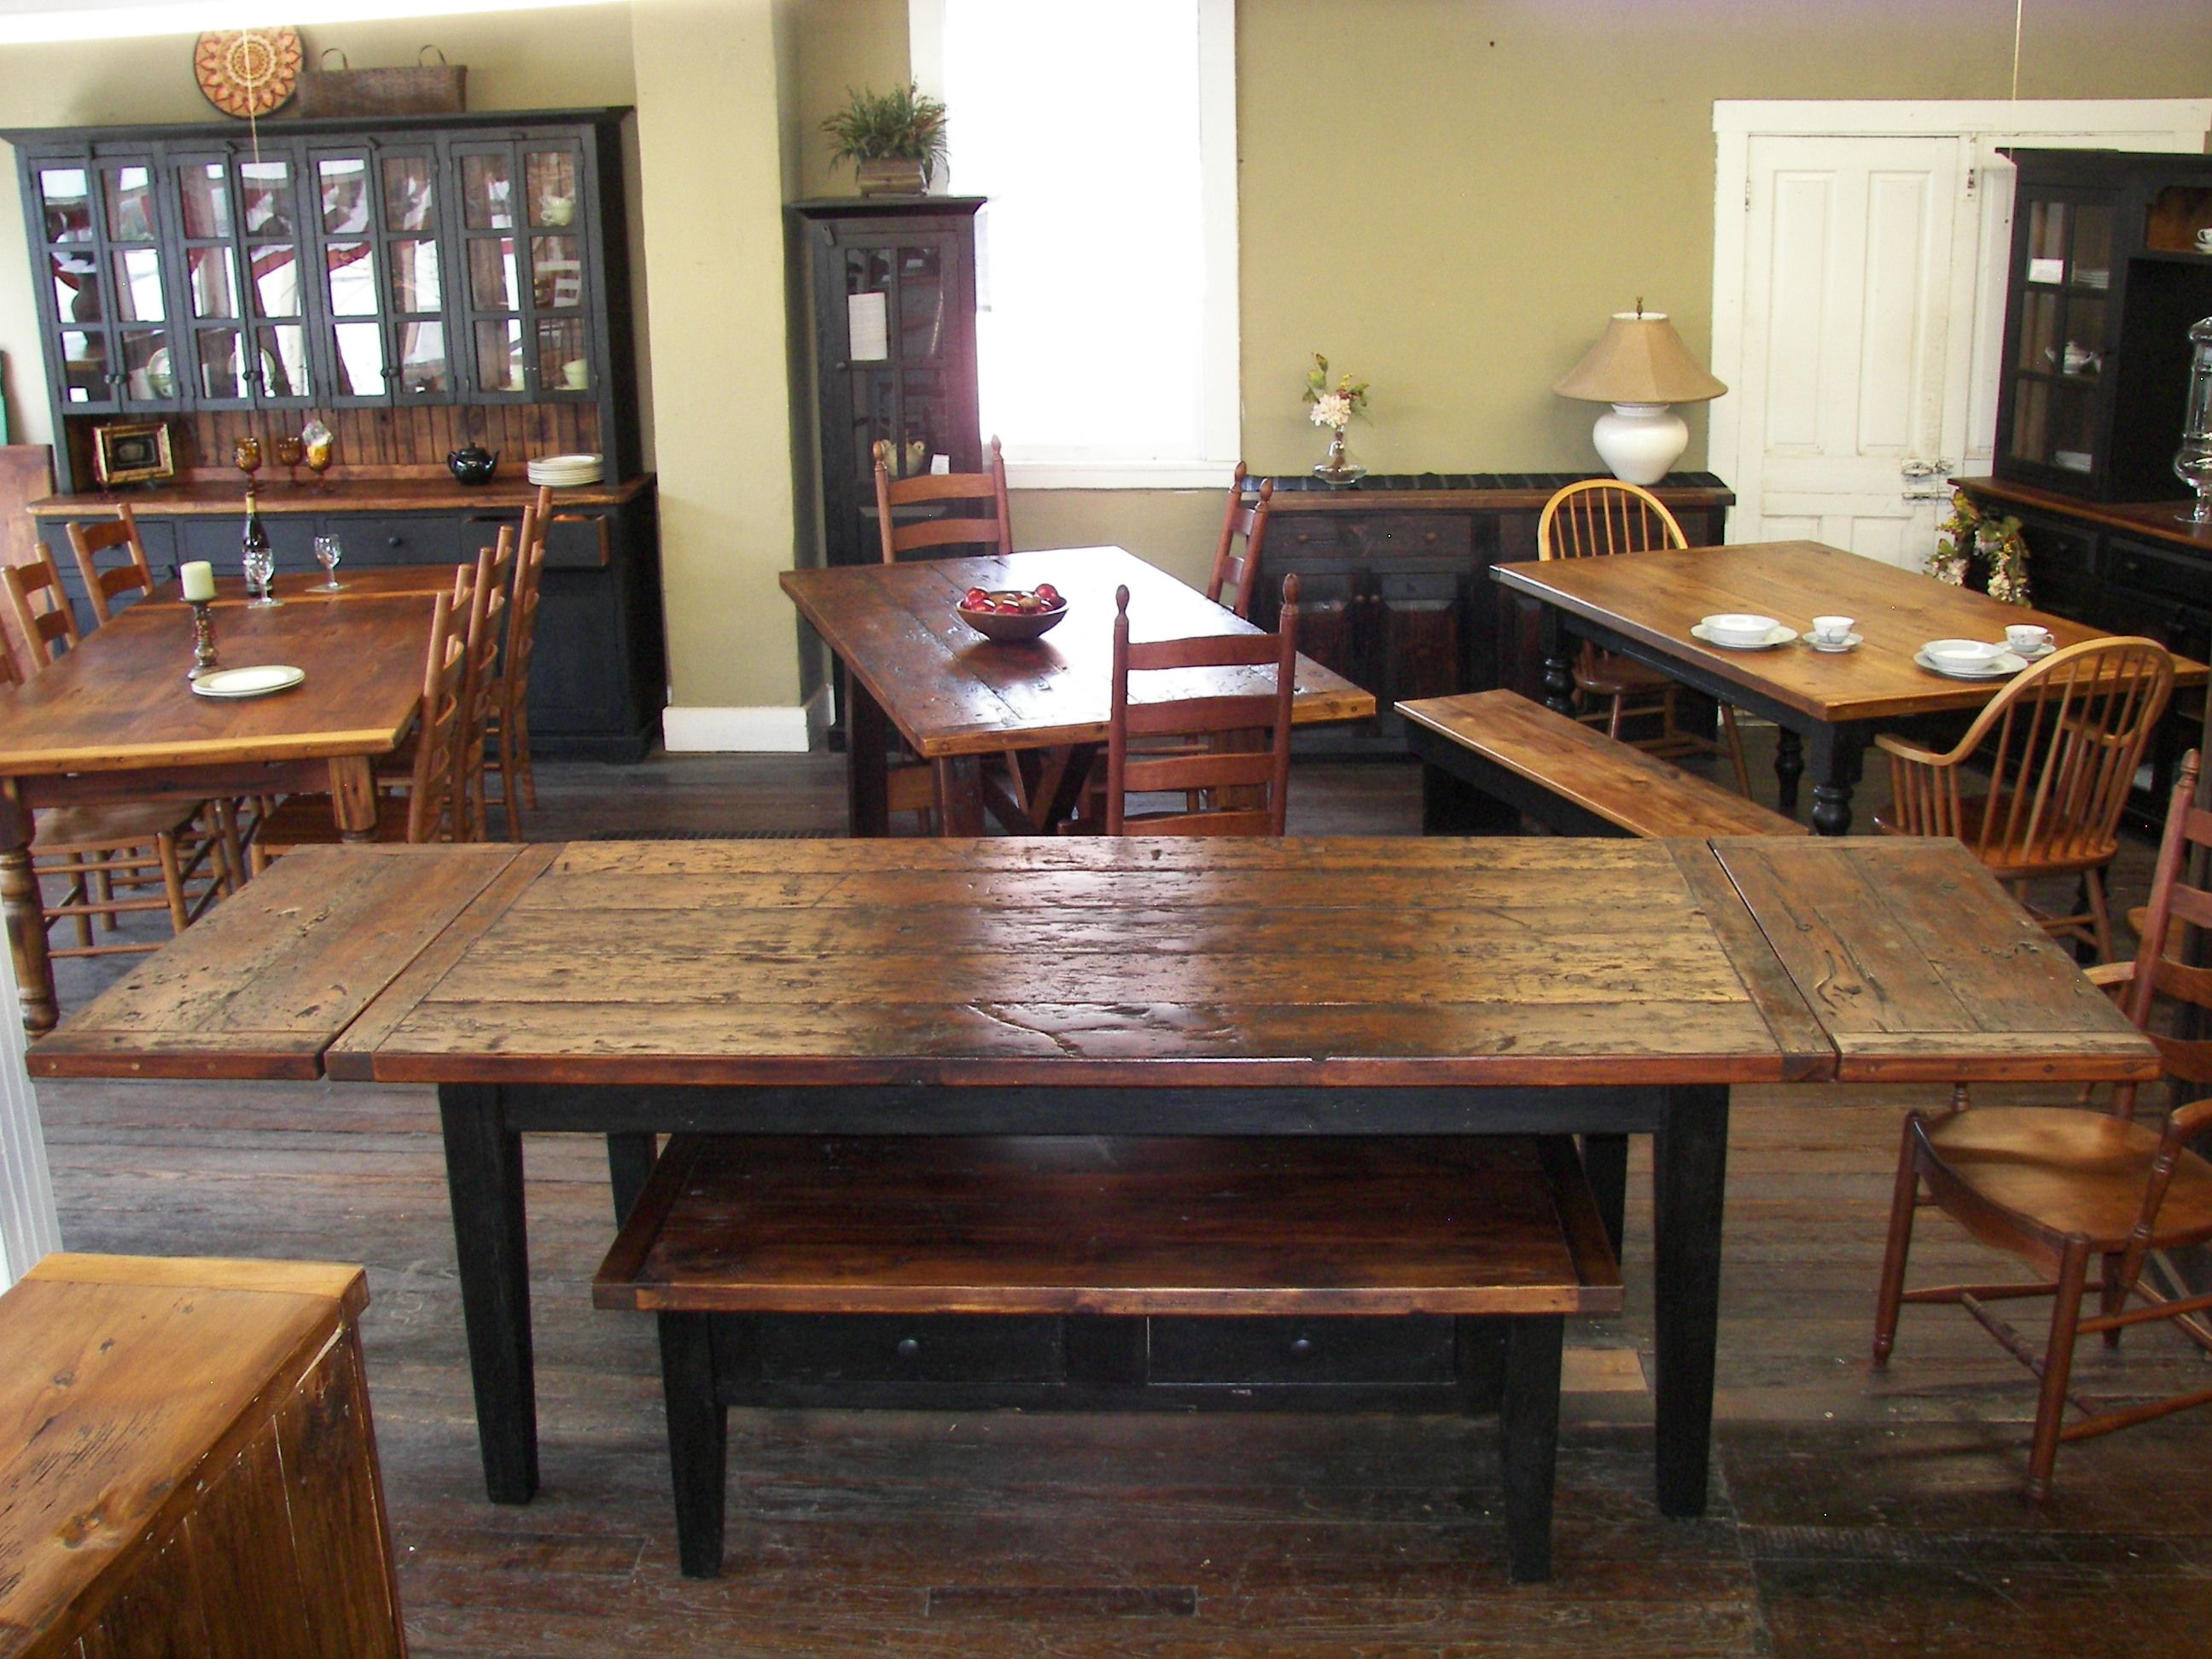 Reclaimed Barn Wood Farm Tables   100 200 Year Old Wood Is Transformed Into  One Of A Kind Furniture In The Heart Of Amish Country, Lancaster, ...